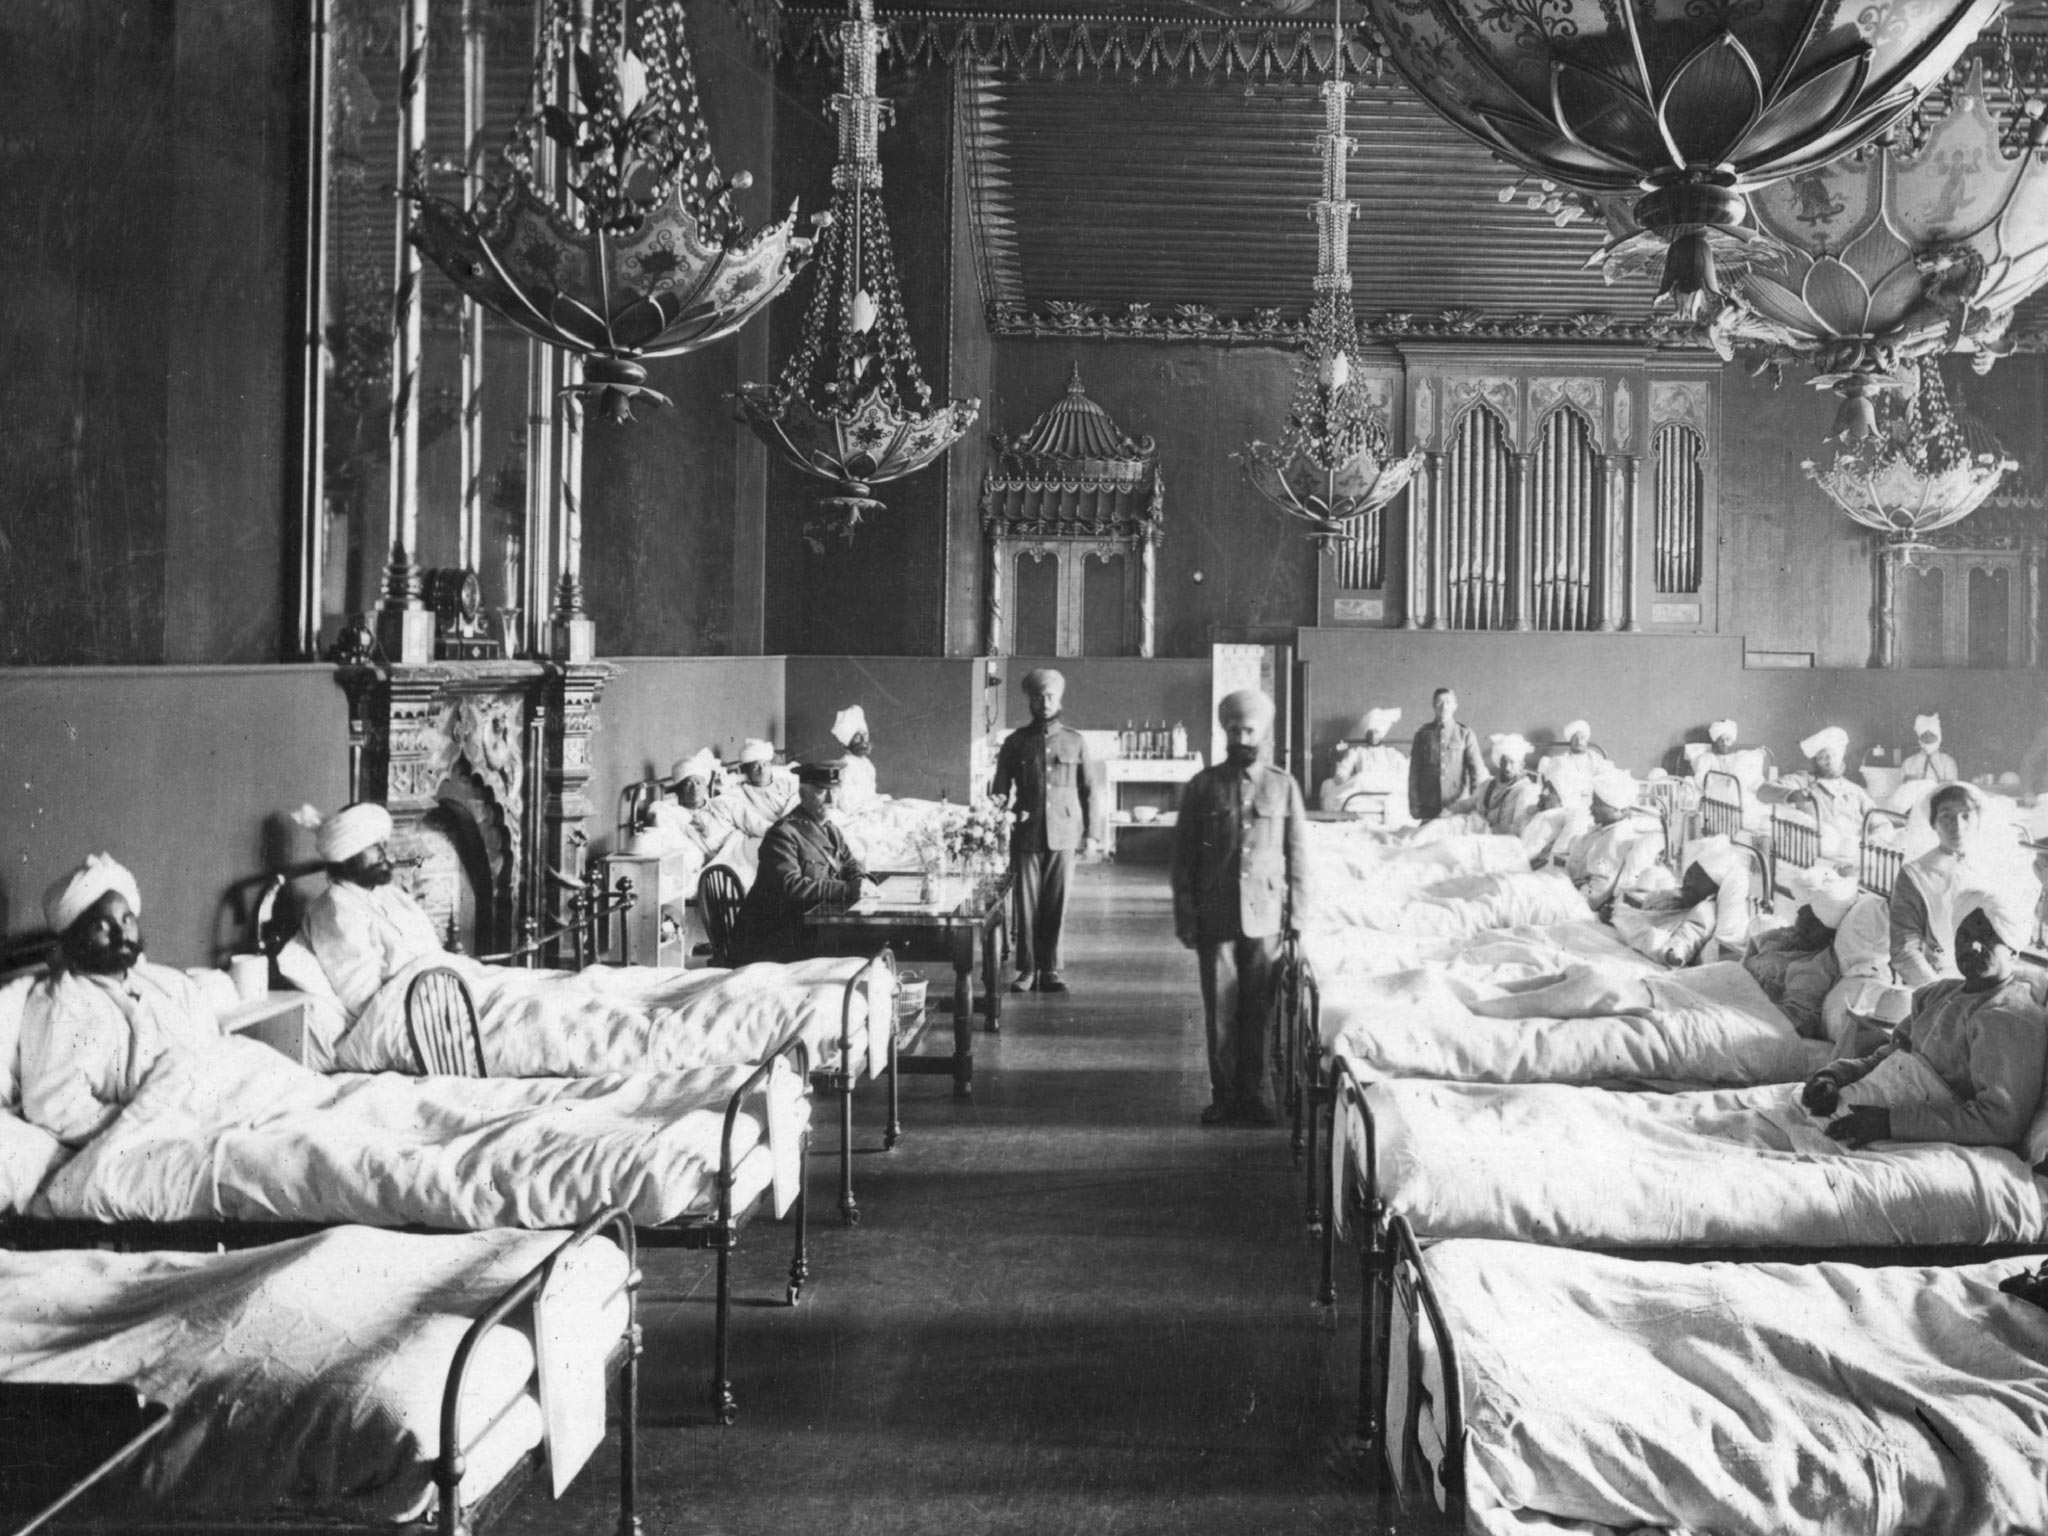 Victorian Public Hospital Bed Numbers : A history of the first world war in moments an